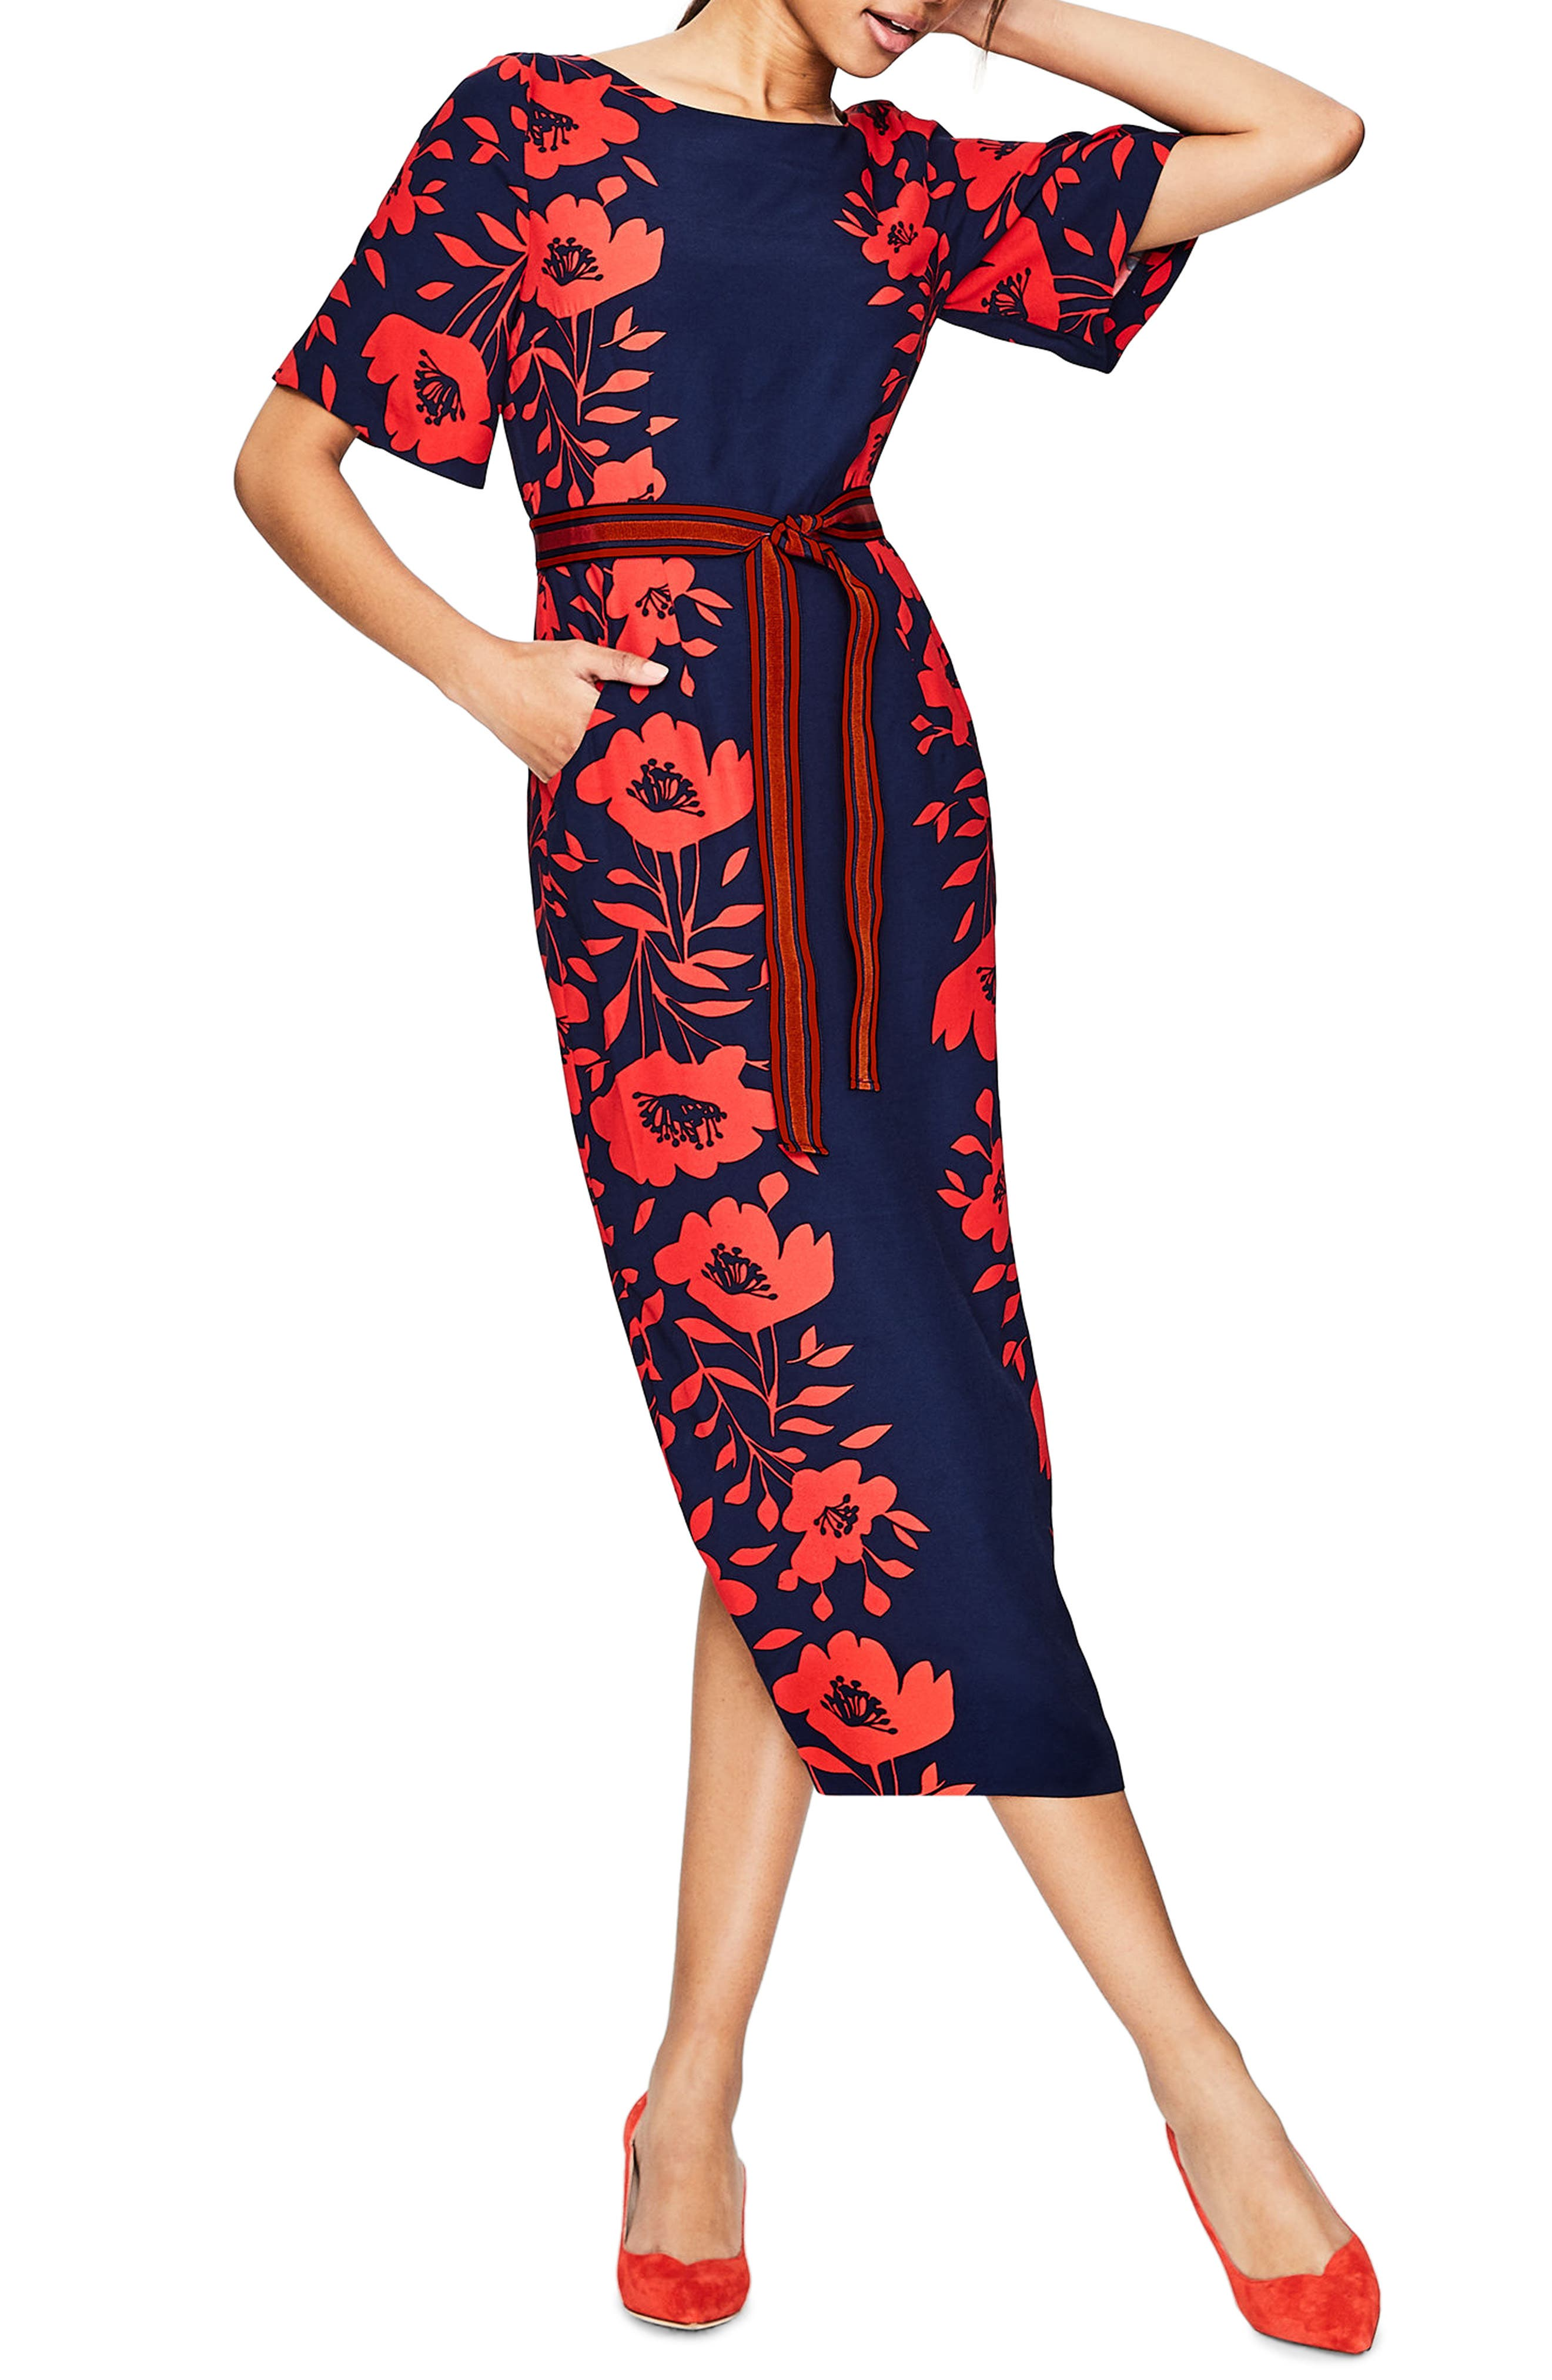 Kimono Sleeve Floral Print Dress,                         Main,                         color, Post Box Red/ Poppy